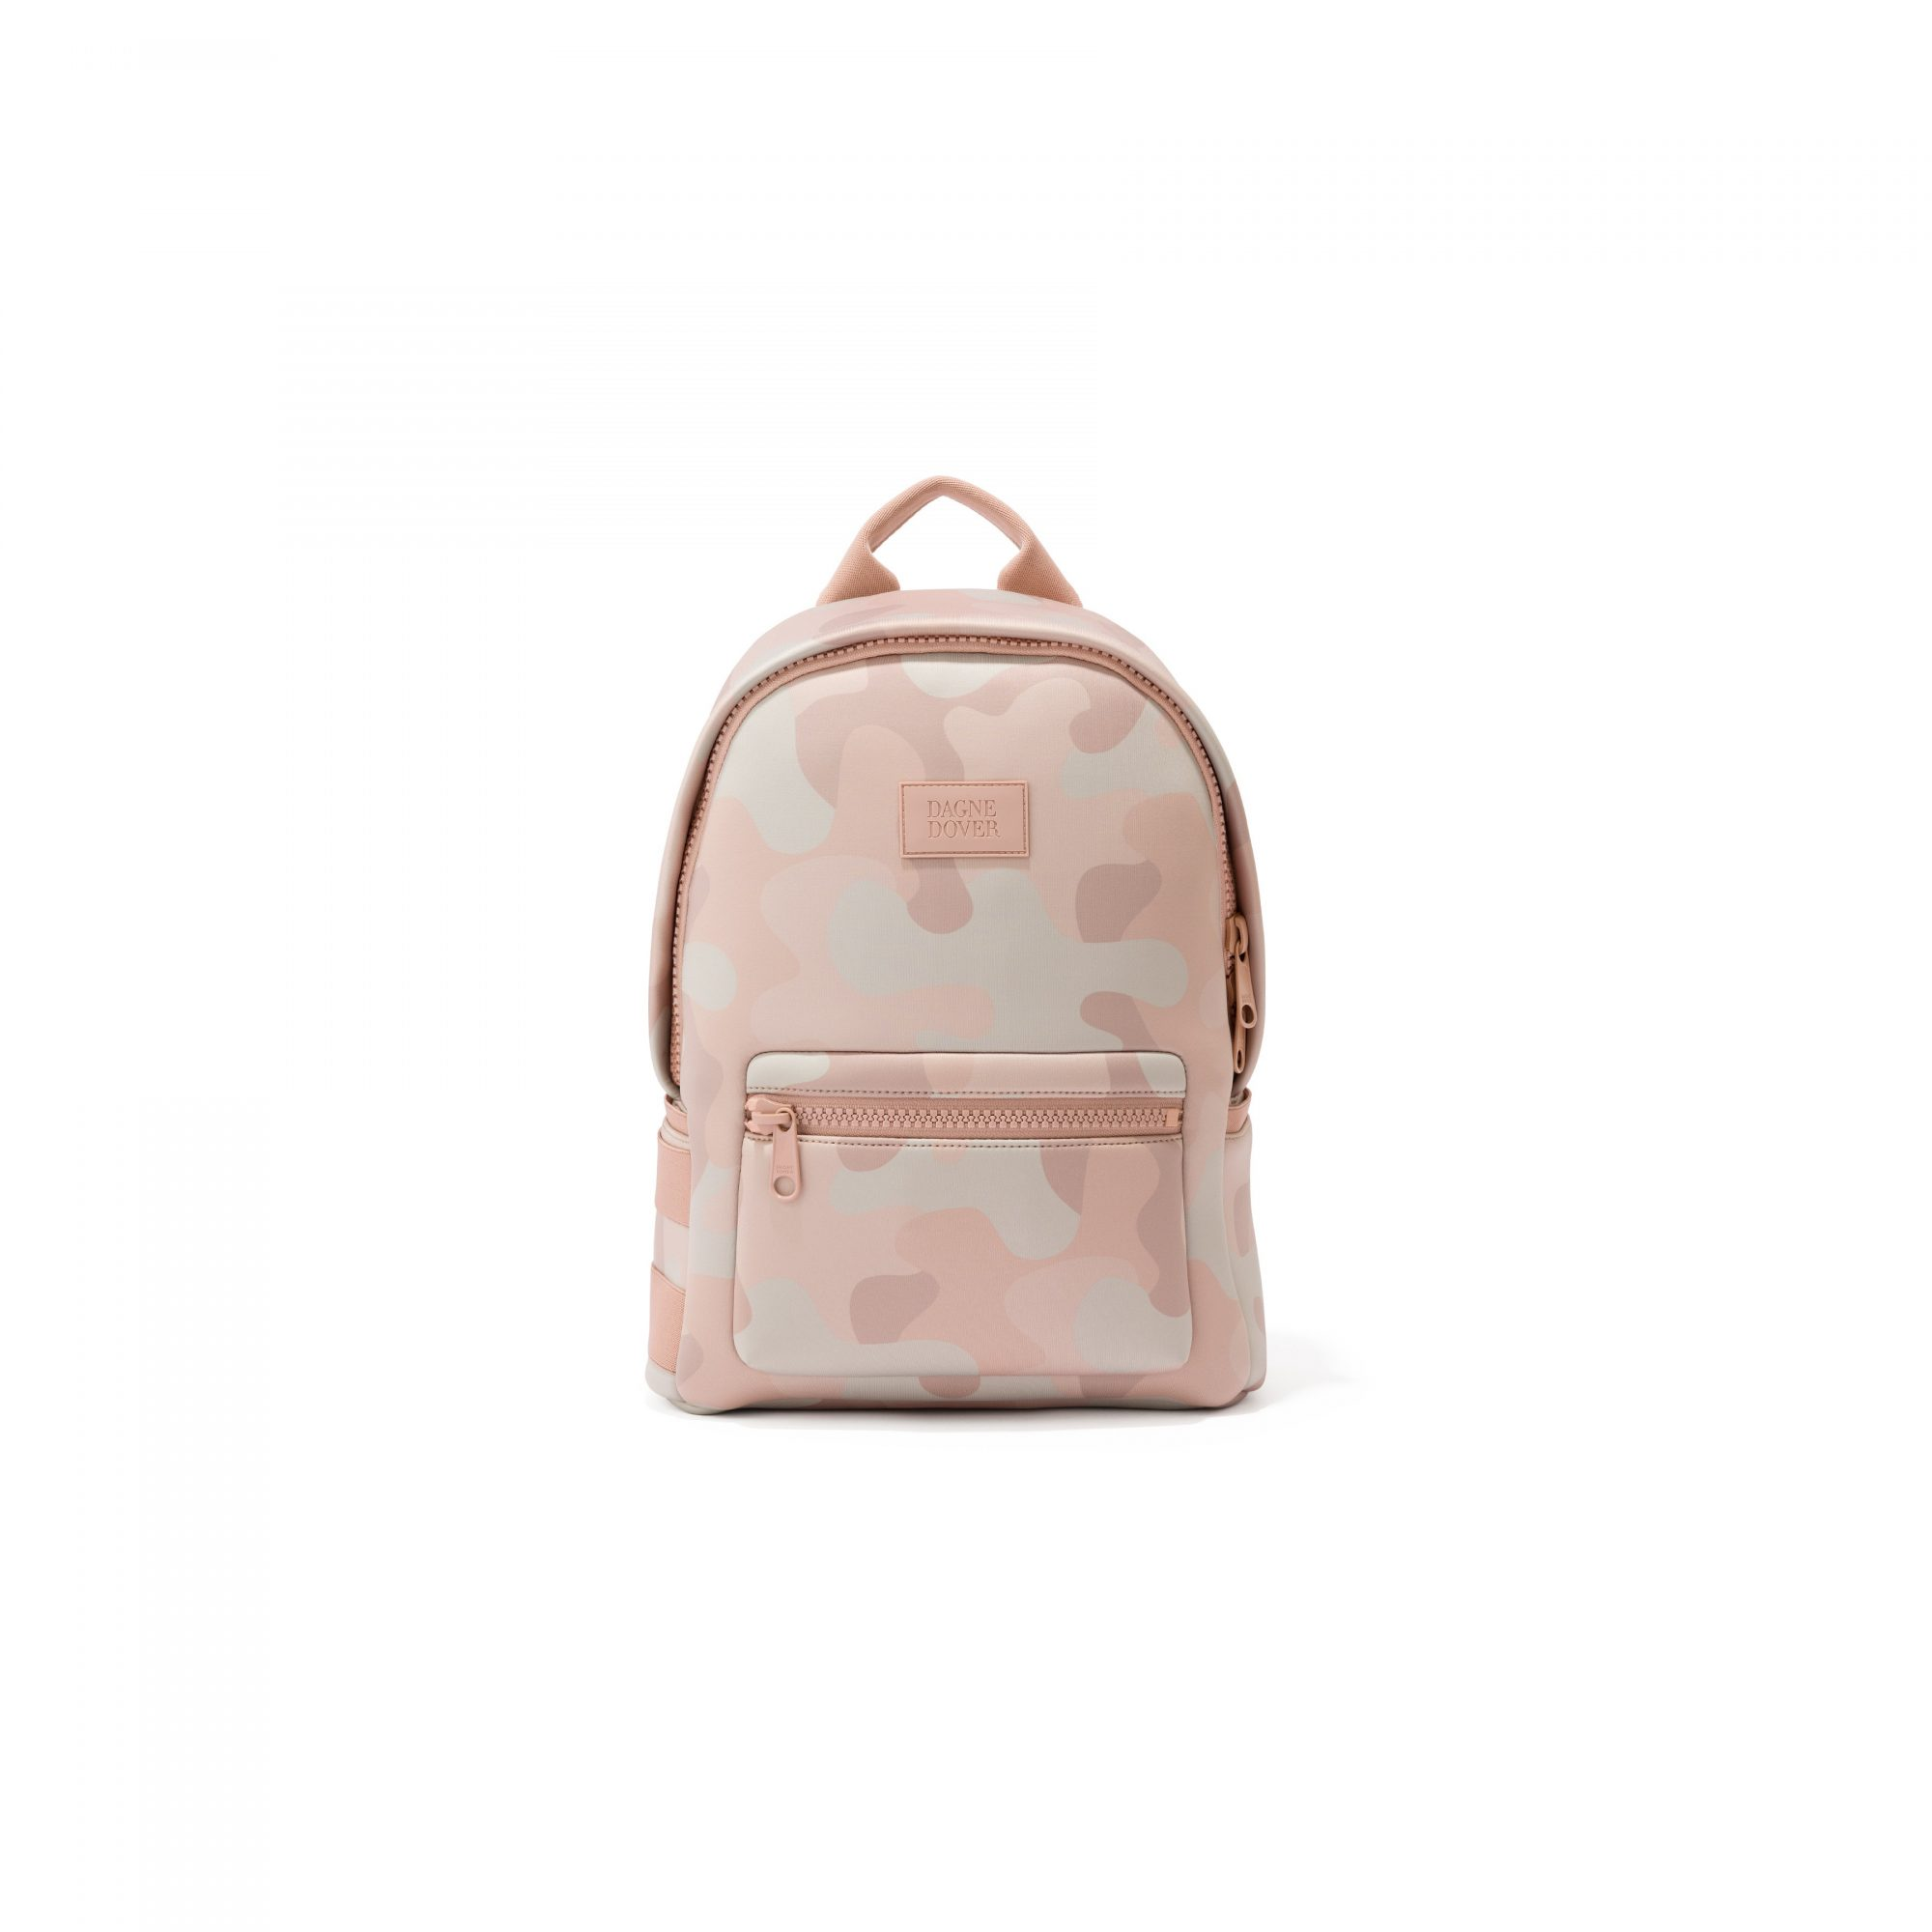 Dagne Dover Medium Dakota Backpack